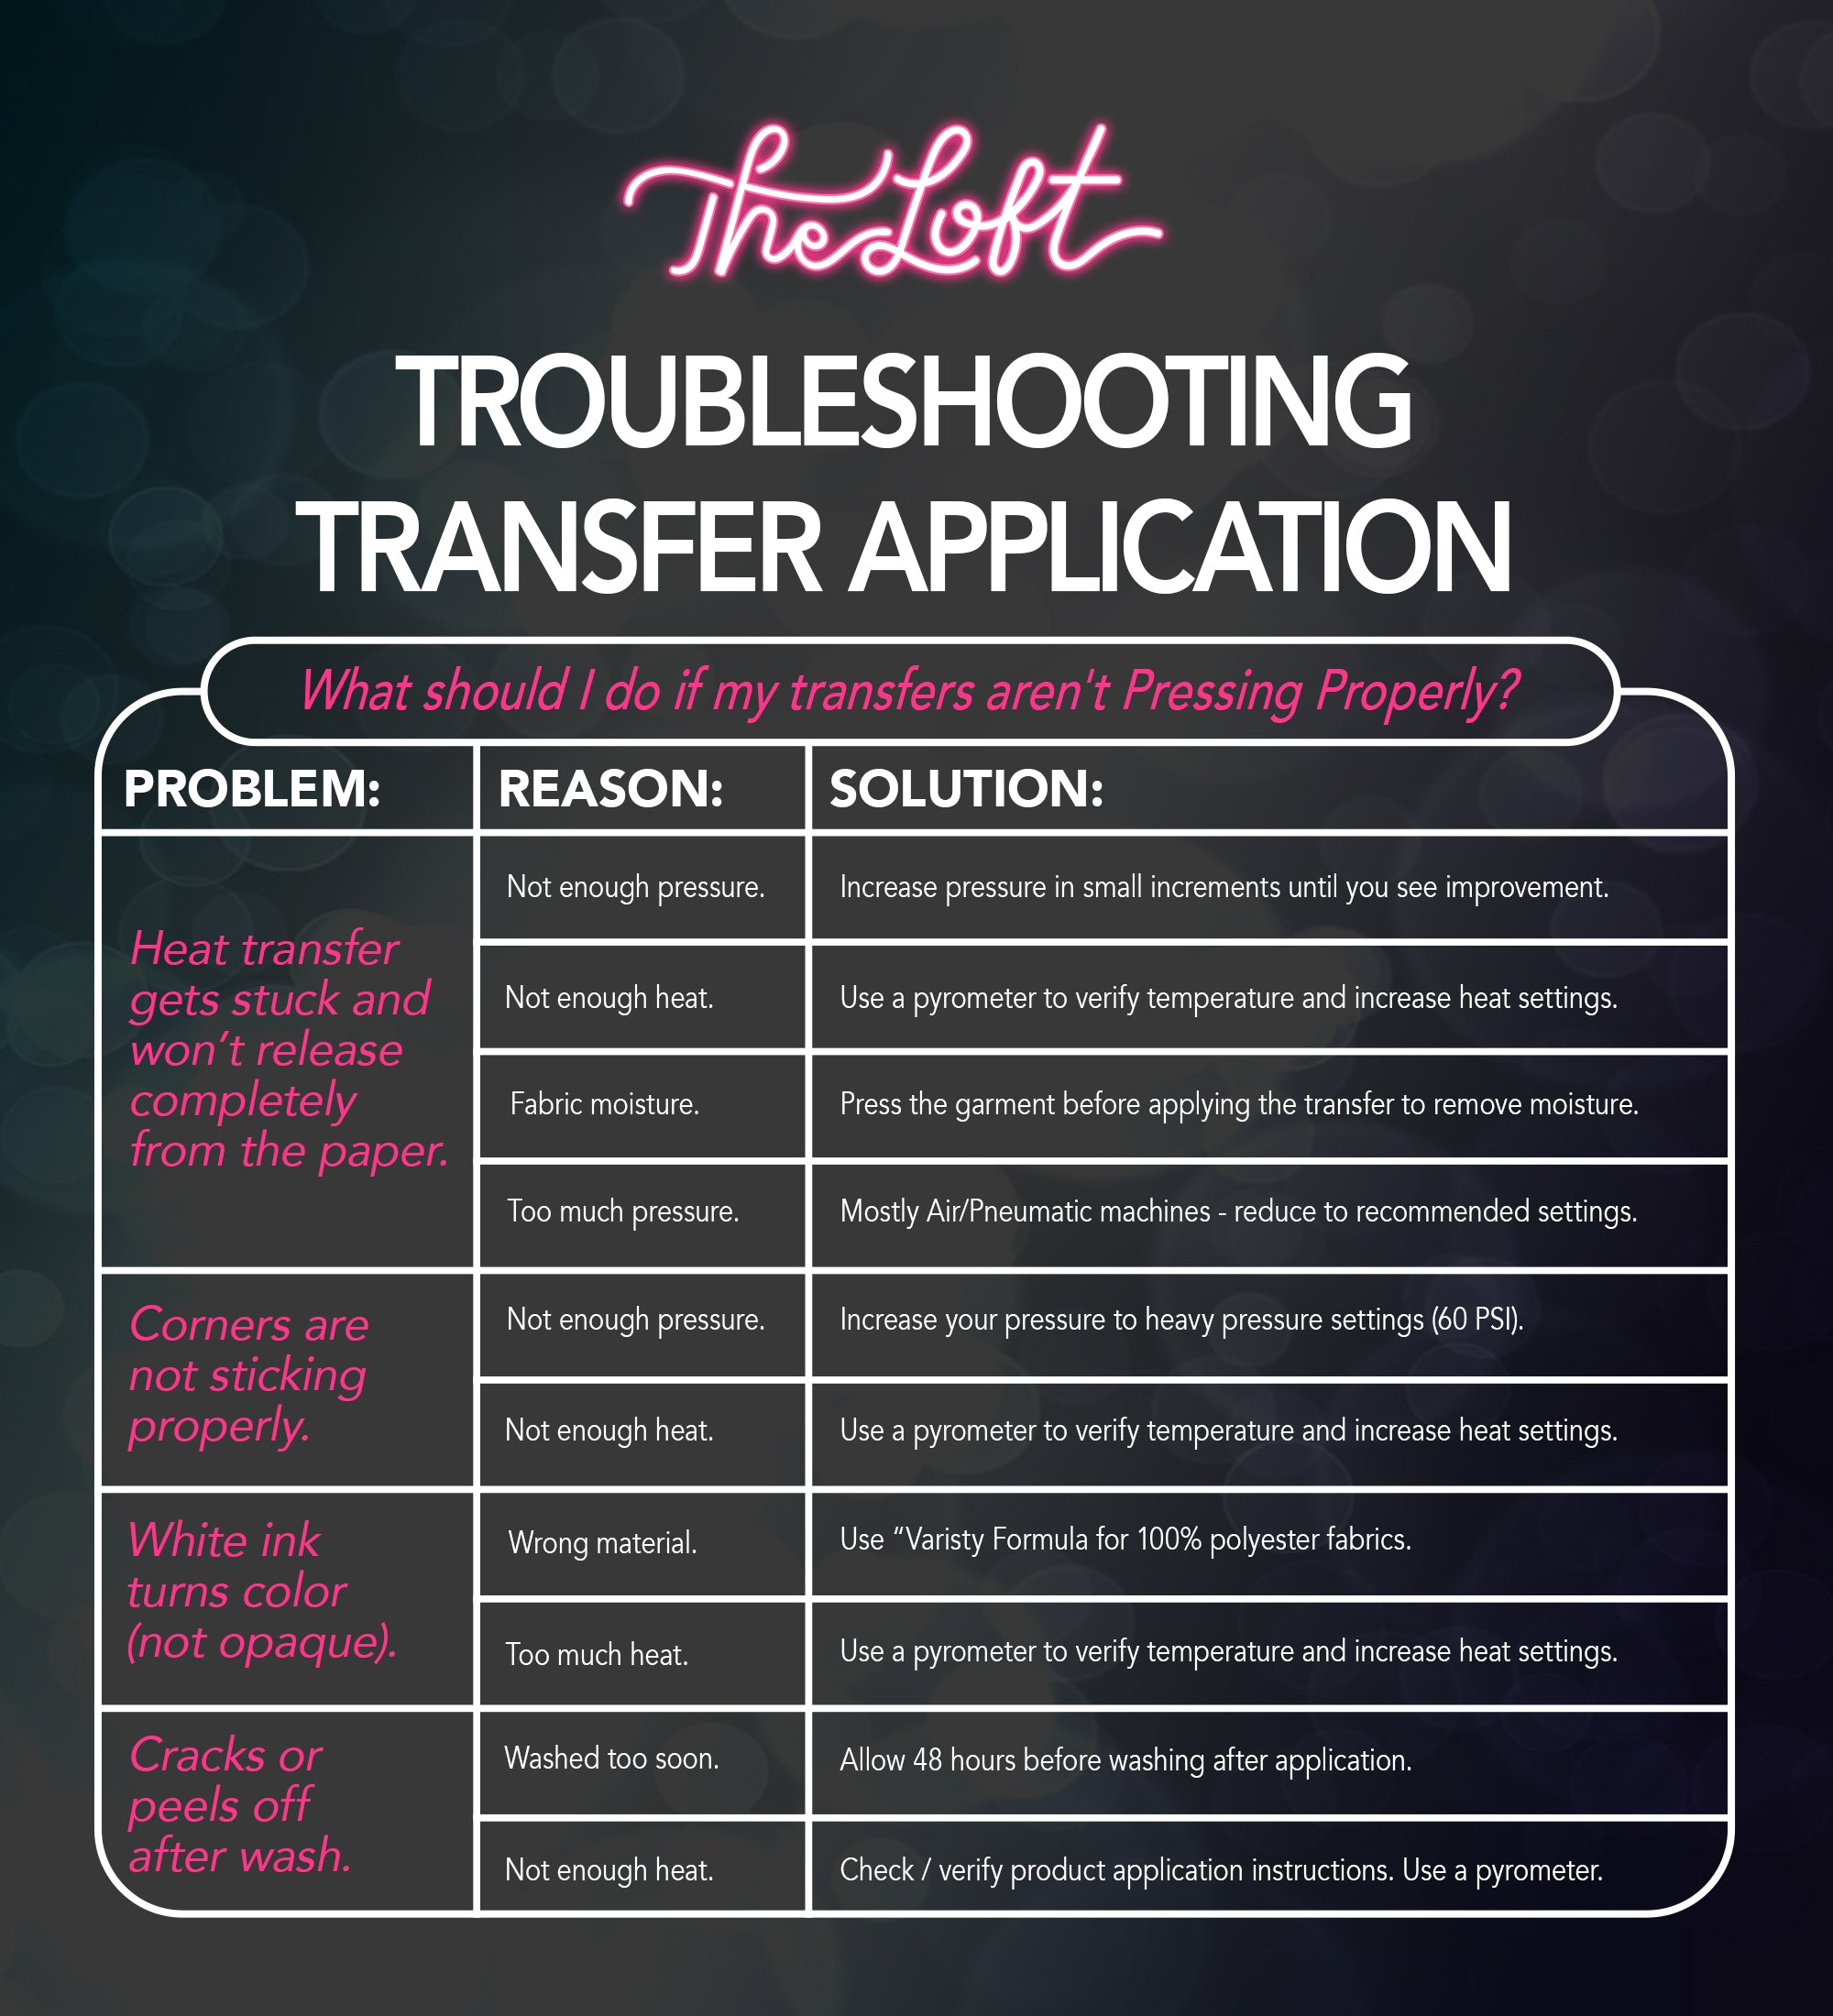 Troubleshooting Transfer Applications